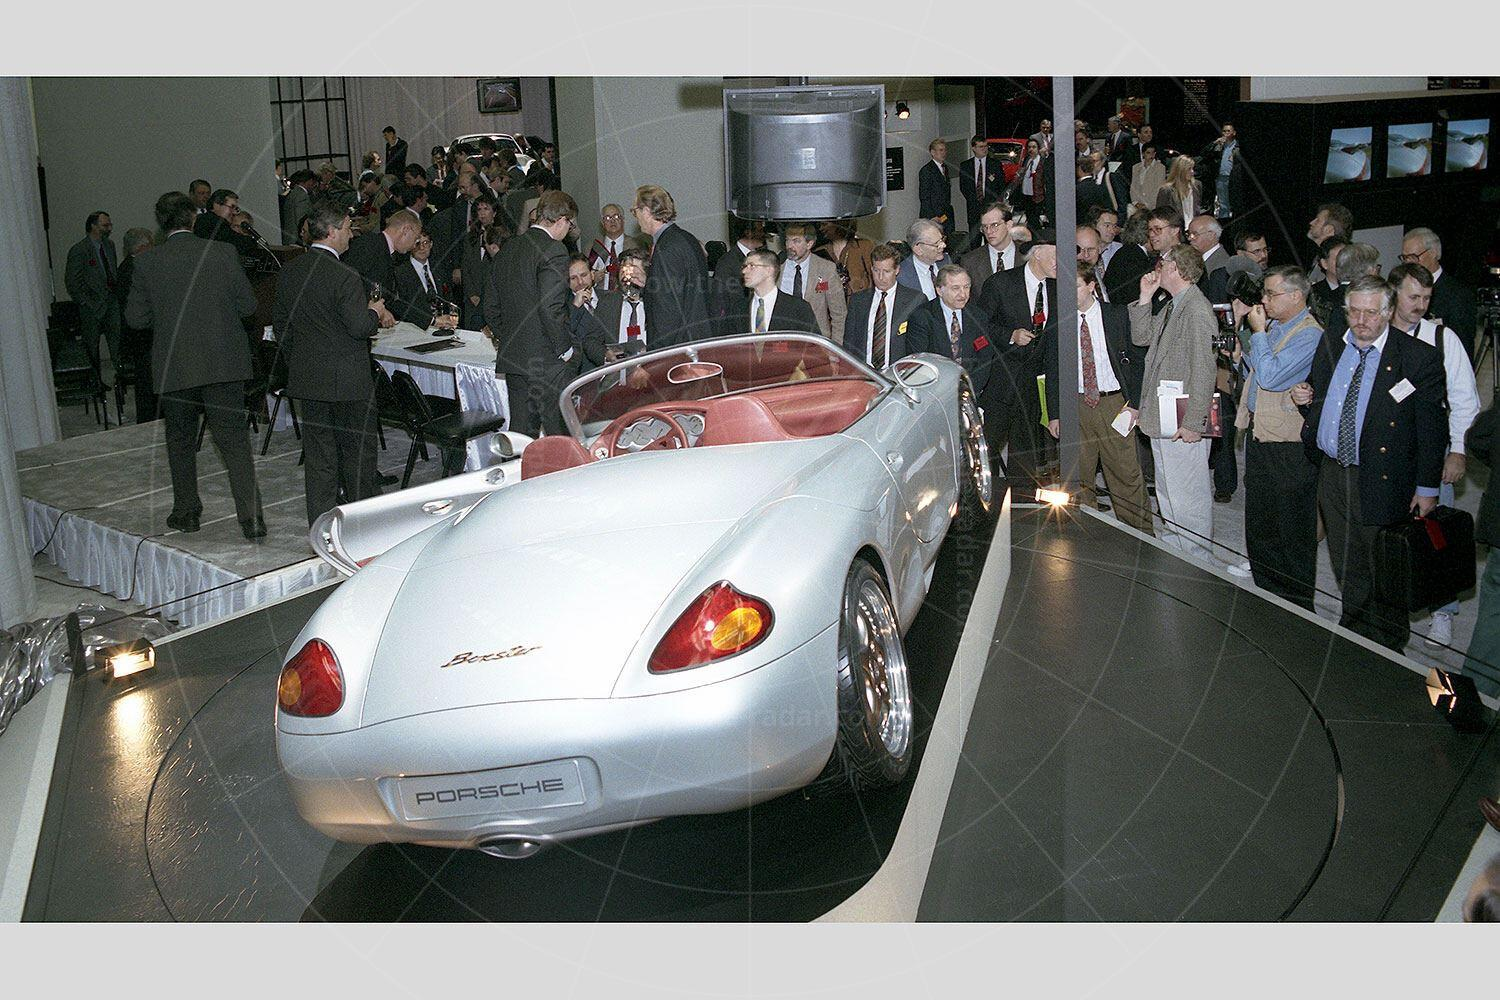 Porsche Boxster concept making its debut at the 1993 Detroit motor show Pic: Porsche | Porsche Boxster concept making its debut at the 1993 Detroit motor show